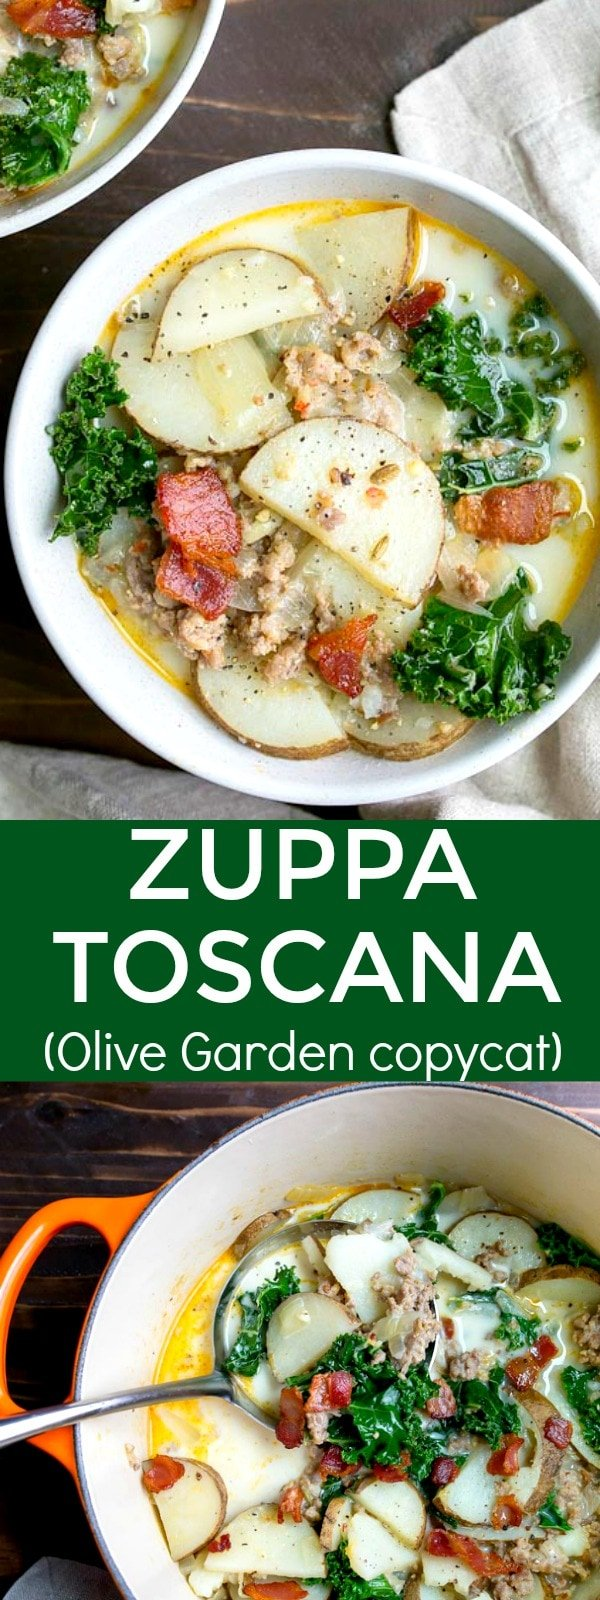 Zuppa Toscana soup recipe, a copycat Olive Garden soup with potatoes, kale, bacon, and sausage. Creamy potato soup made with bacon, sausage and kale that tastes just like Olive Garden's Zupa Toscana soup!